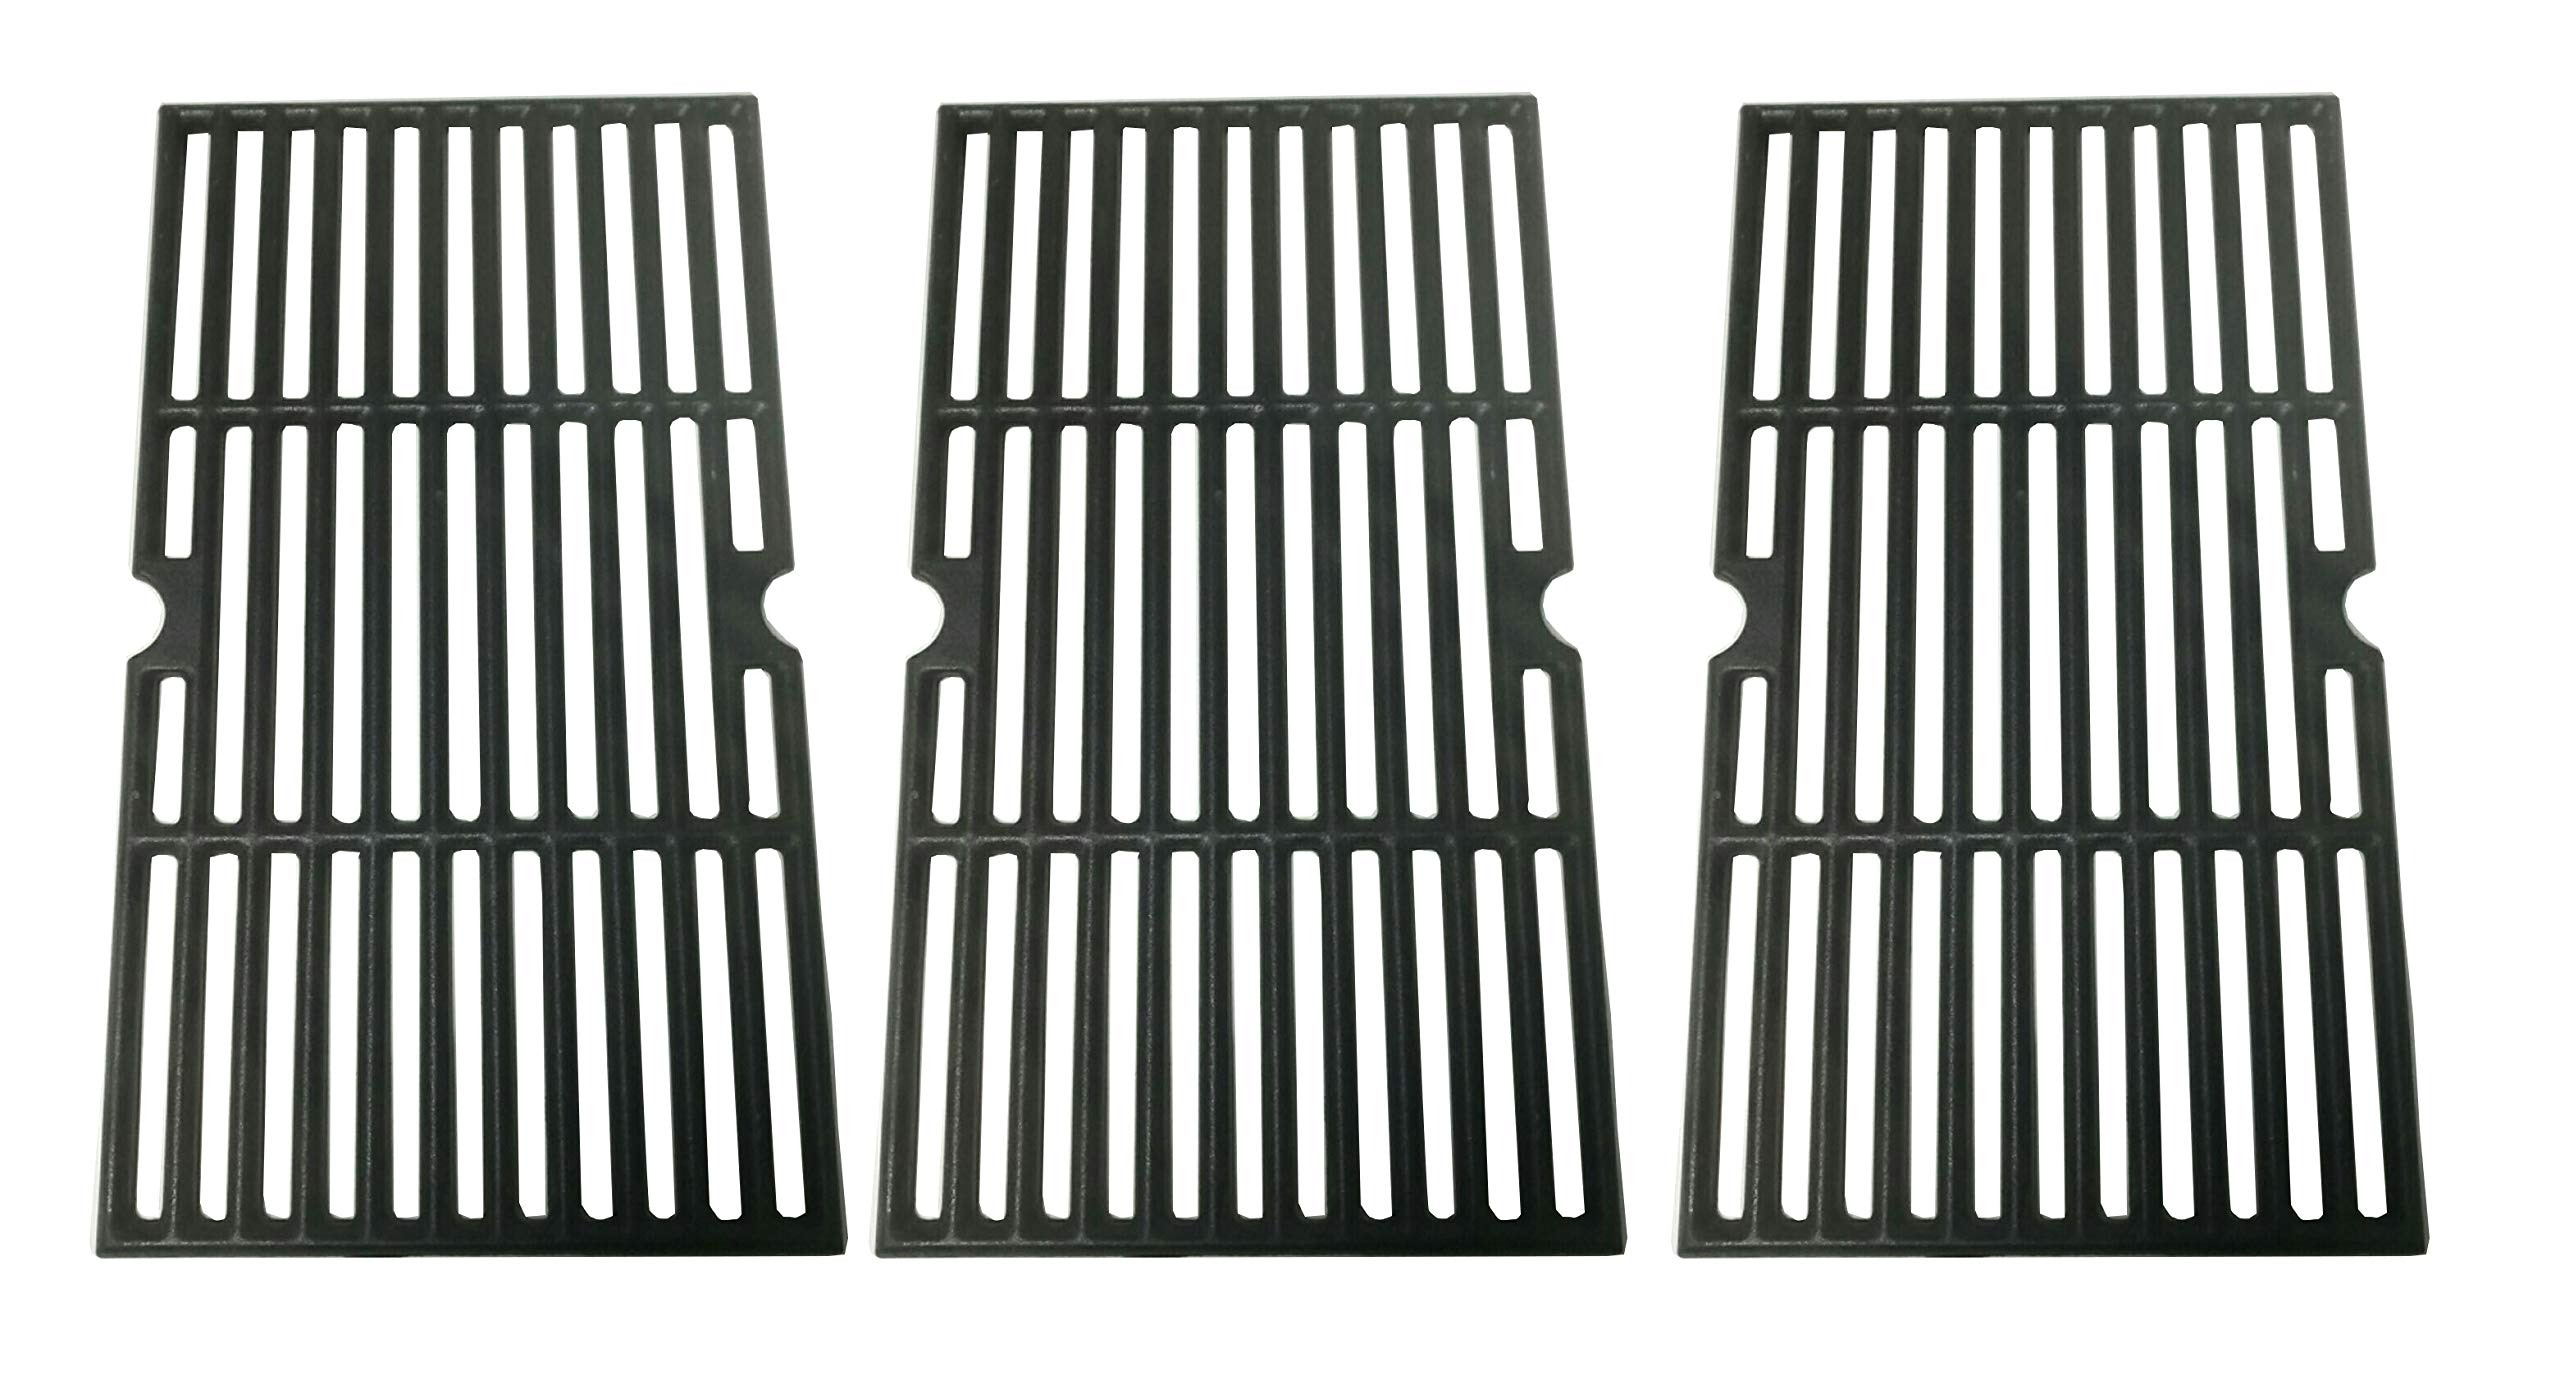 BBQration Matte Finished Cast Iron Cooking Grid for Select Charbroil Brand Gas Grill-griddles,Set of 3.(17 x 28.875 ins)